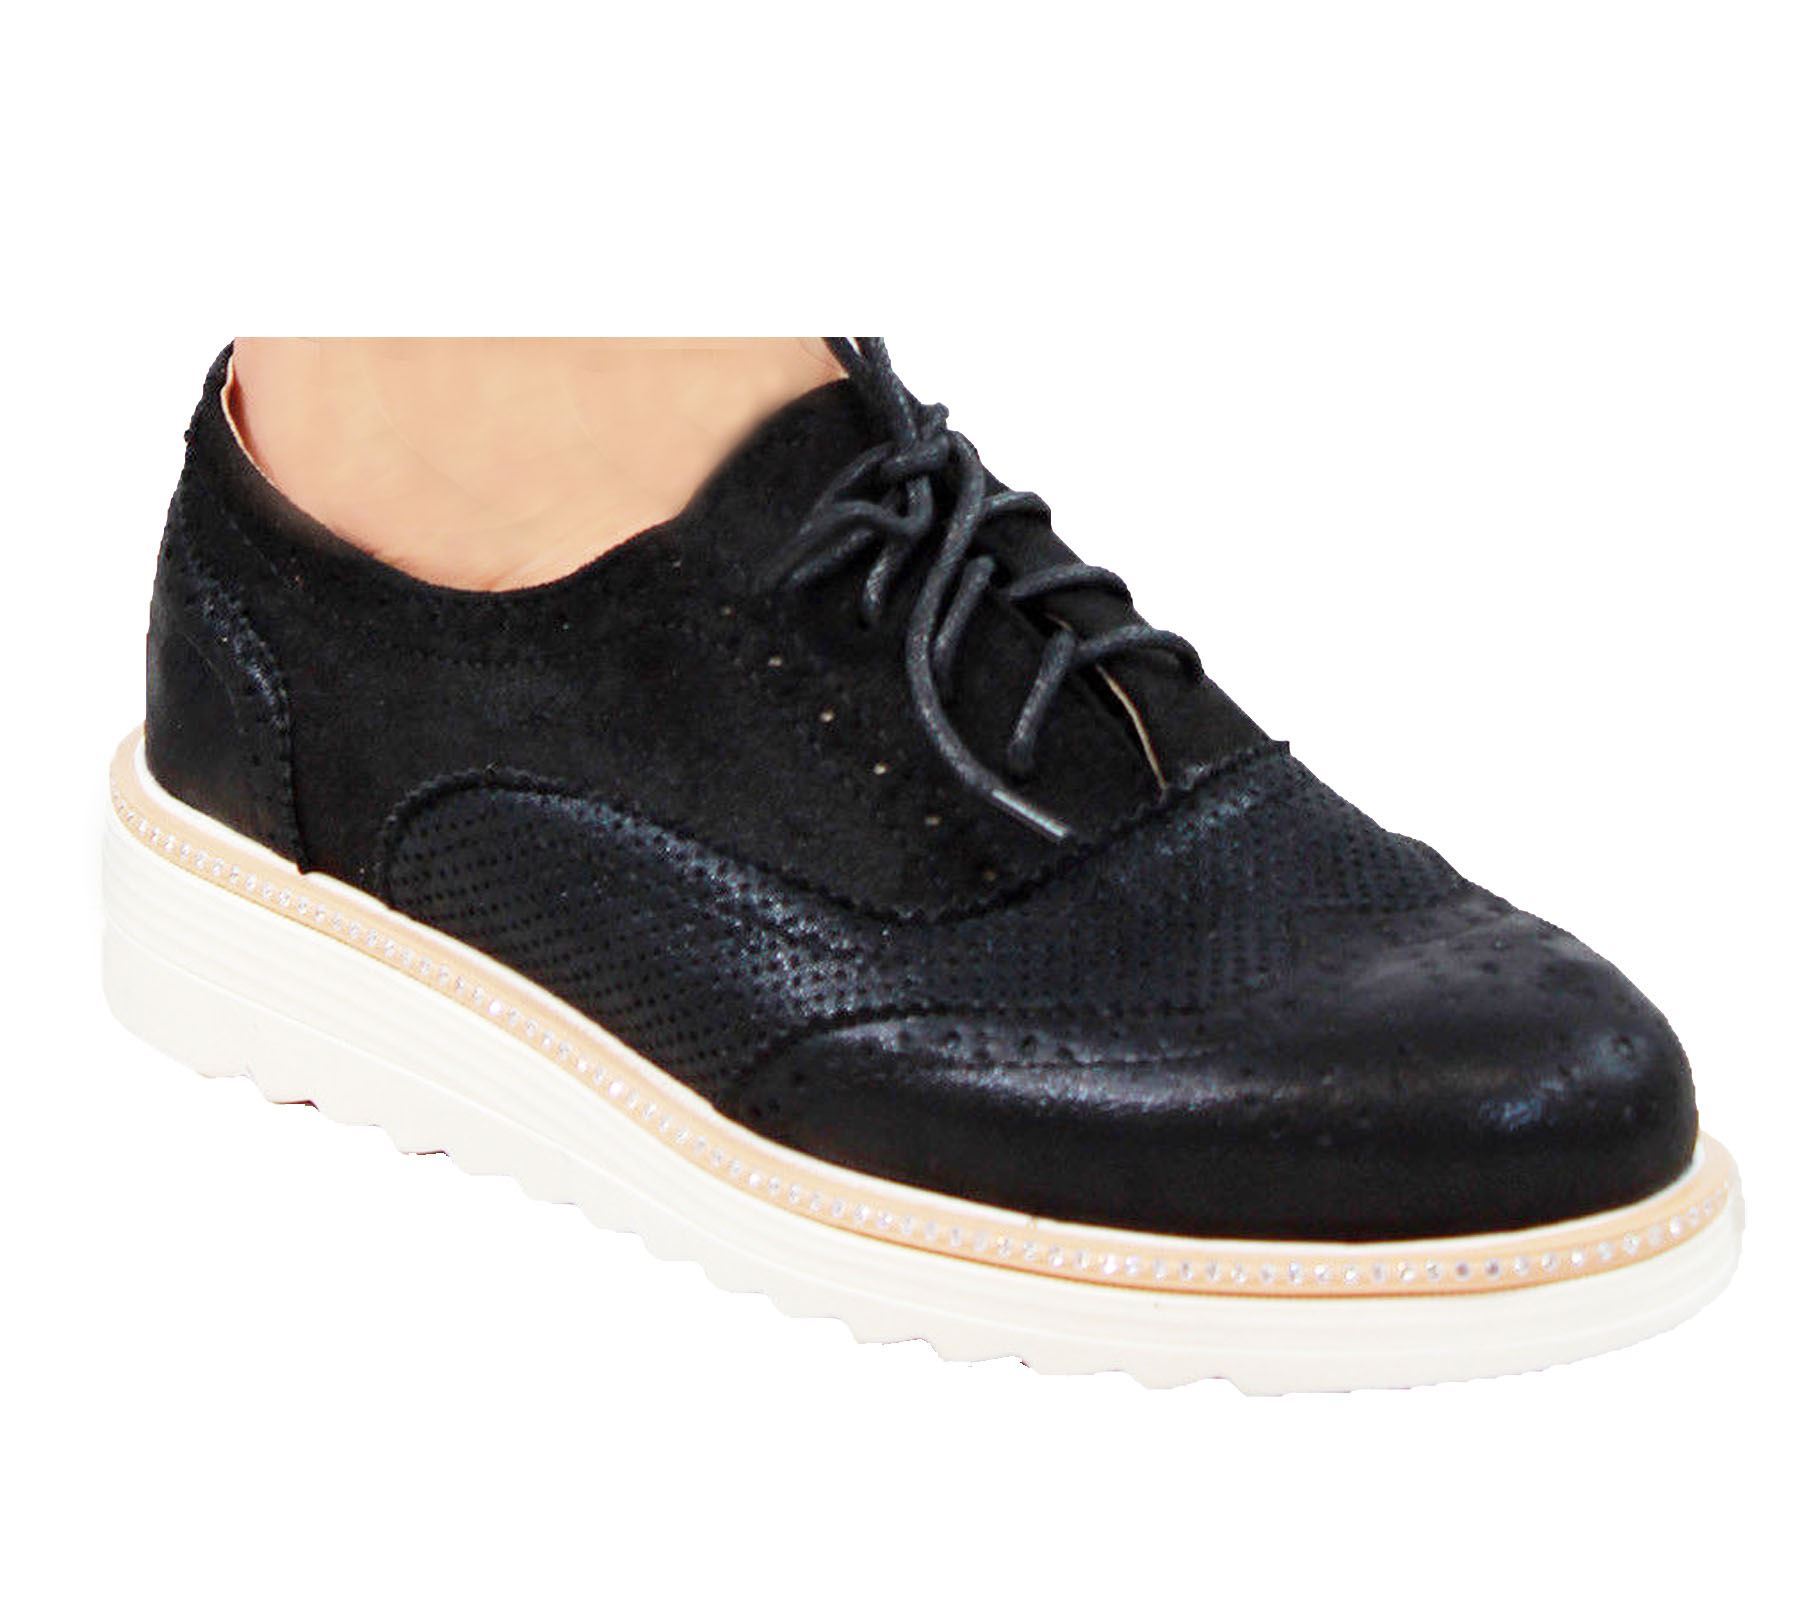 Ladies-Brogue-Lace-Up-Shoes-Womens-Oxford-Smart-Office-Loafers-Shoes miniatura 12